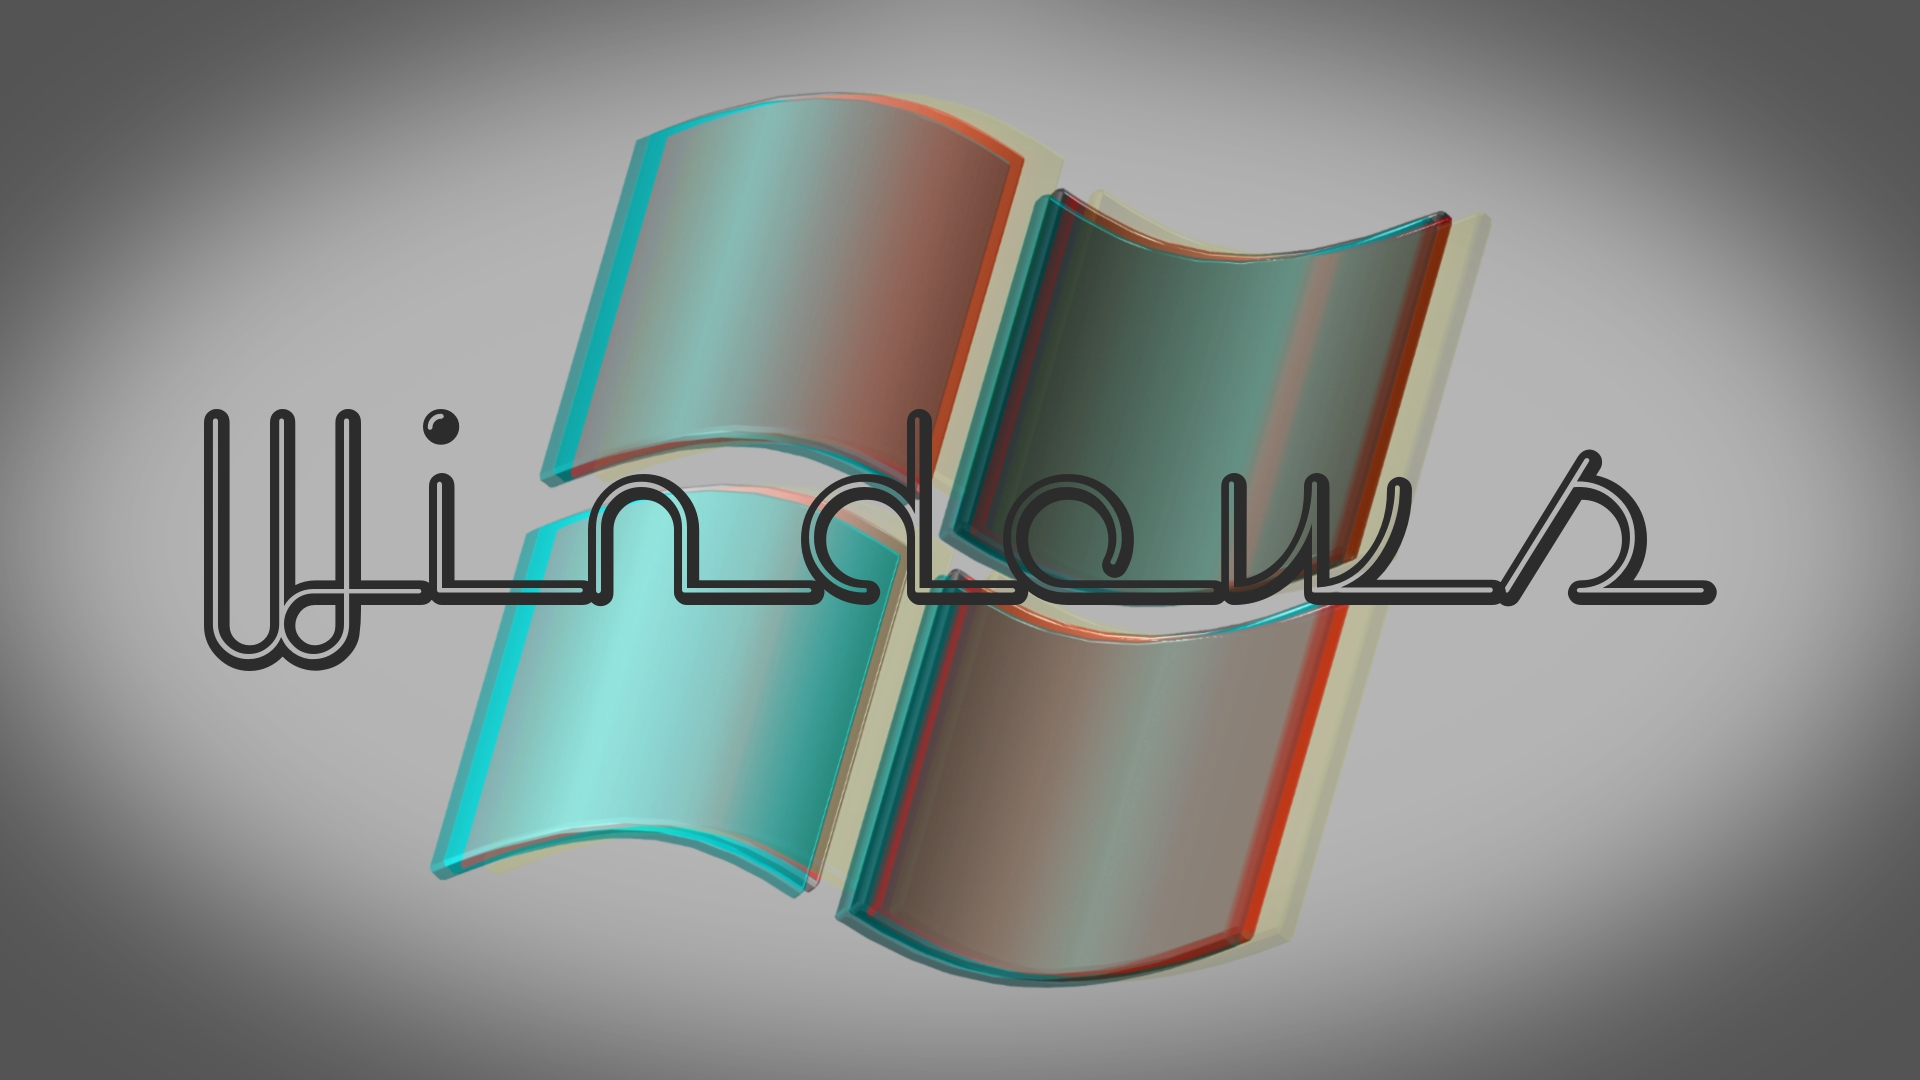 Retro Look Windows Wallpaper 1920x1080 By Wyster12 On